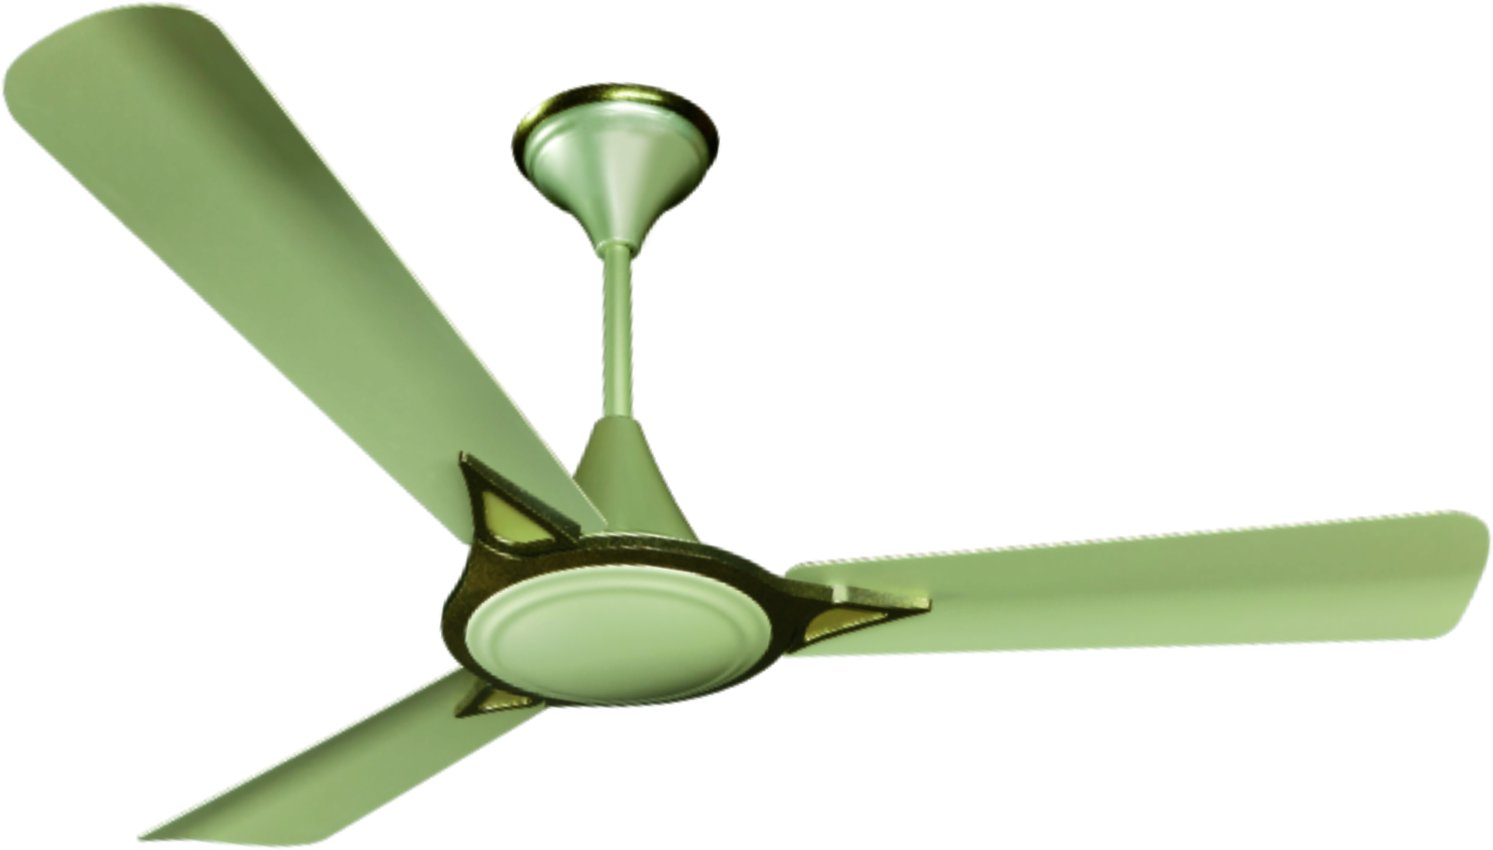 Buy crompton avancer 48 inch 70 watt decorative high speed ceiling buy crompton avancer 48 inch 70 watt decorative high speed ceiling fan winter glow online at low prices in india amazon aloadofball Images